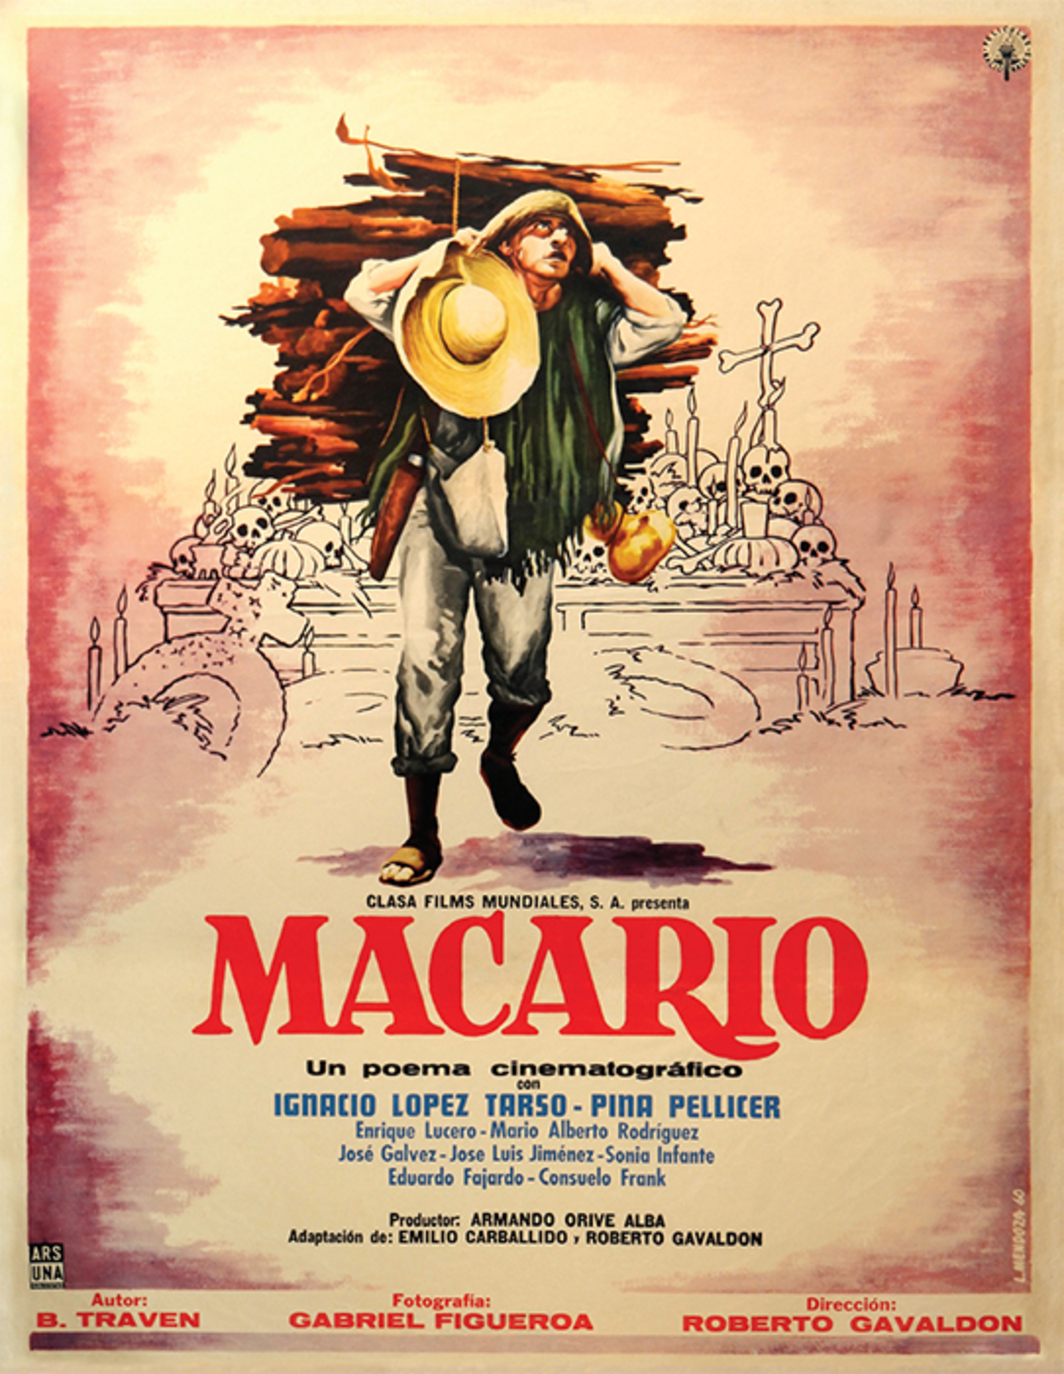 Reproduction of a poster by L. Mendoza for the film Macario, 1960, written by B. Traven.